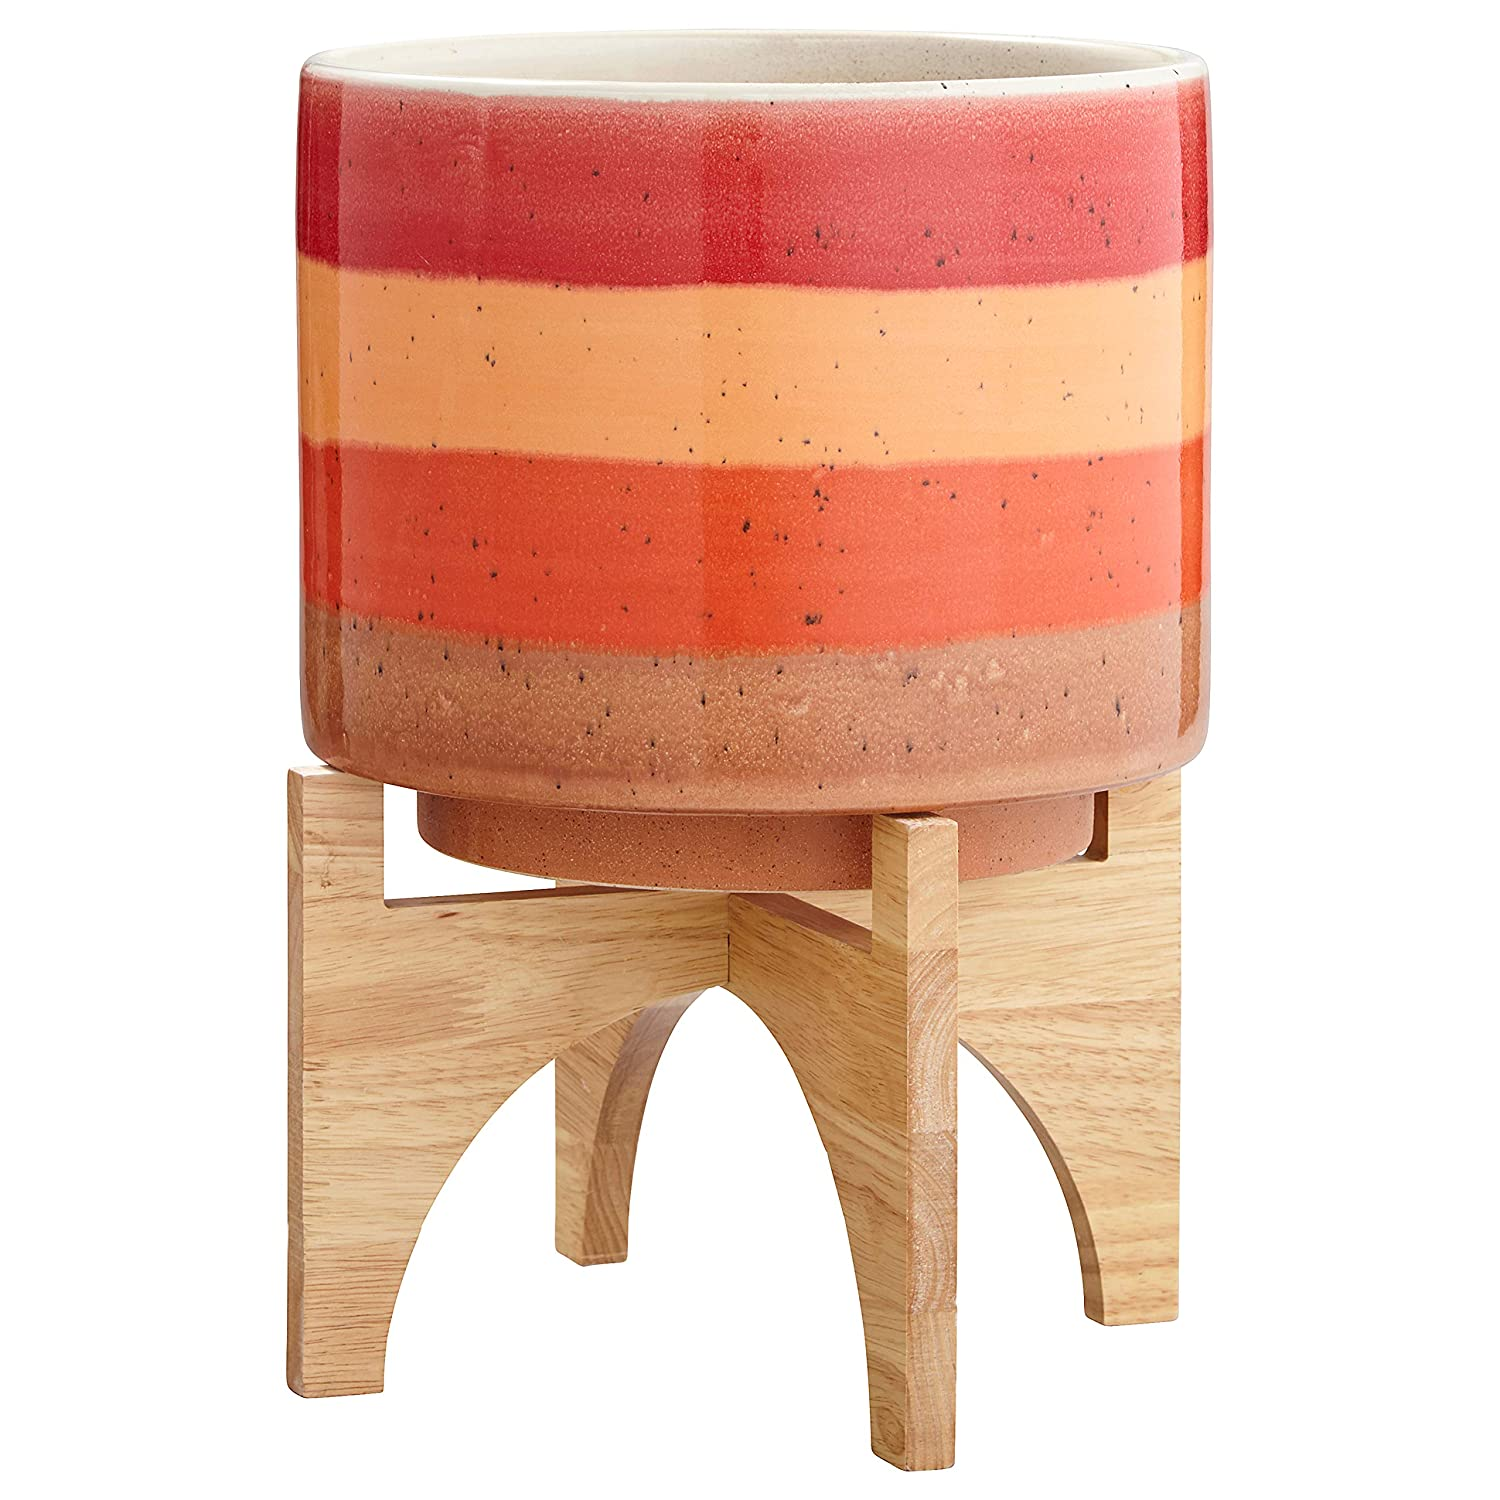 Rivet Mid-Century Modern Ceramic and Bamboo Planter Flower Pot with Stand,14.5 H, Red and Orange